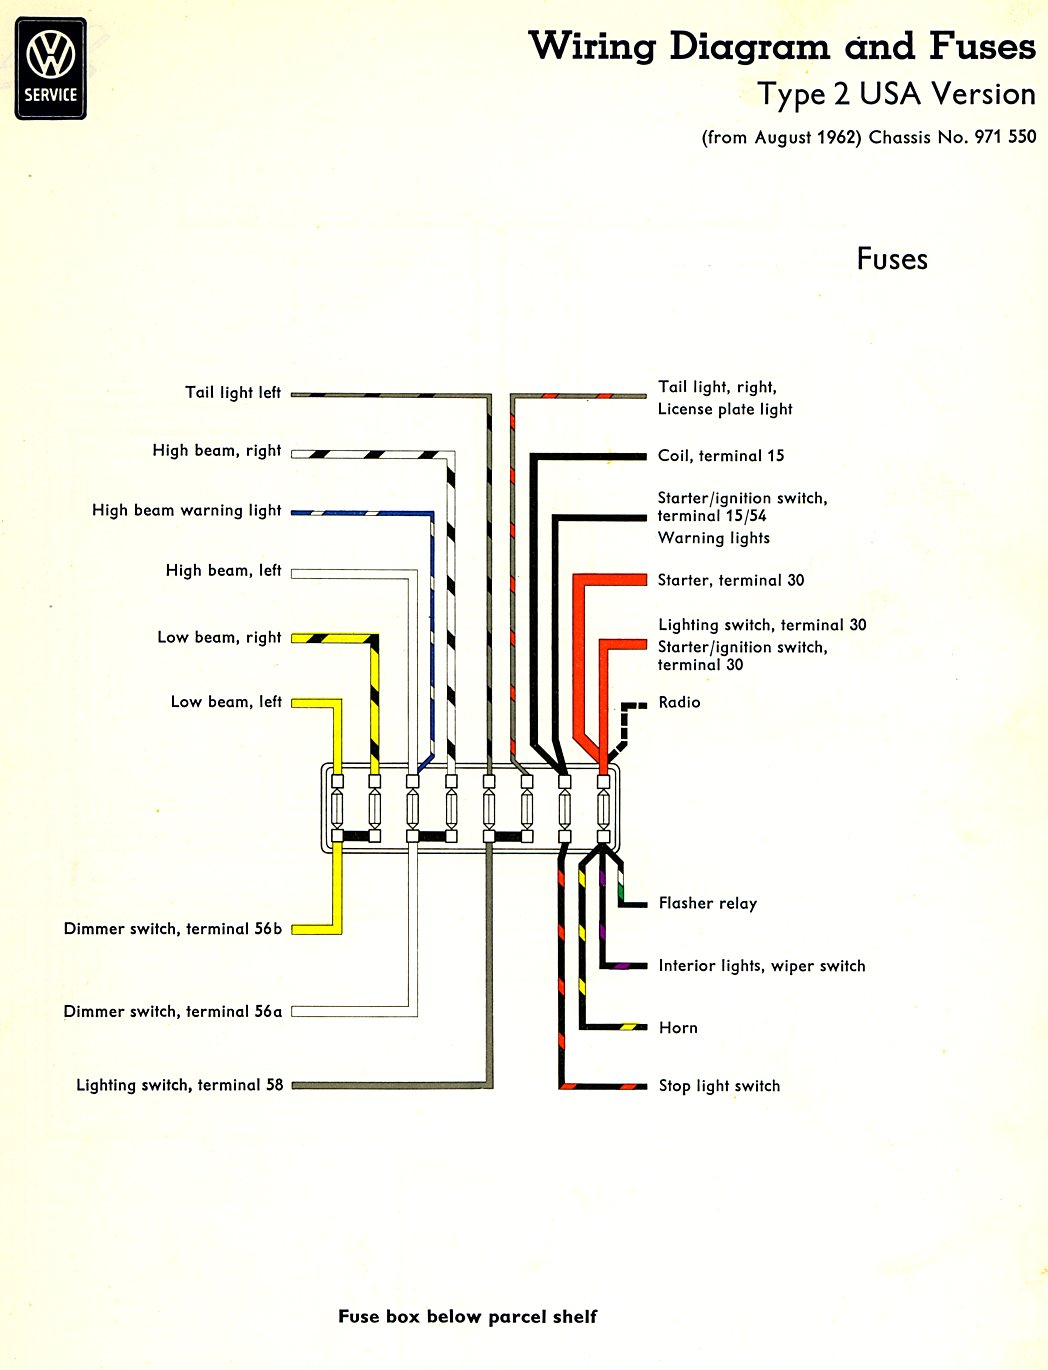 thesamba com split bus view topic where to wire in extra fuse box diagram image may have been reduced in size click image to view fullscreen